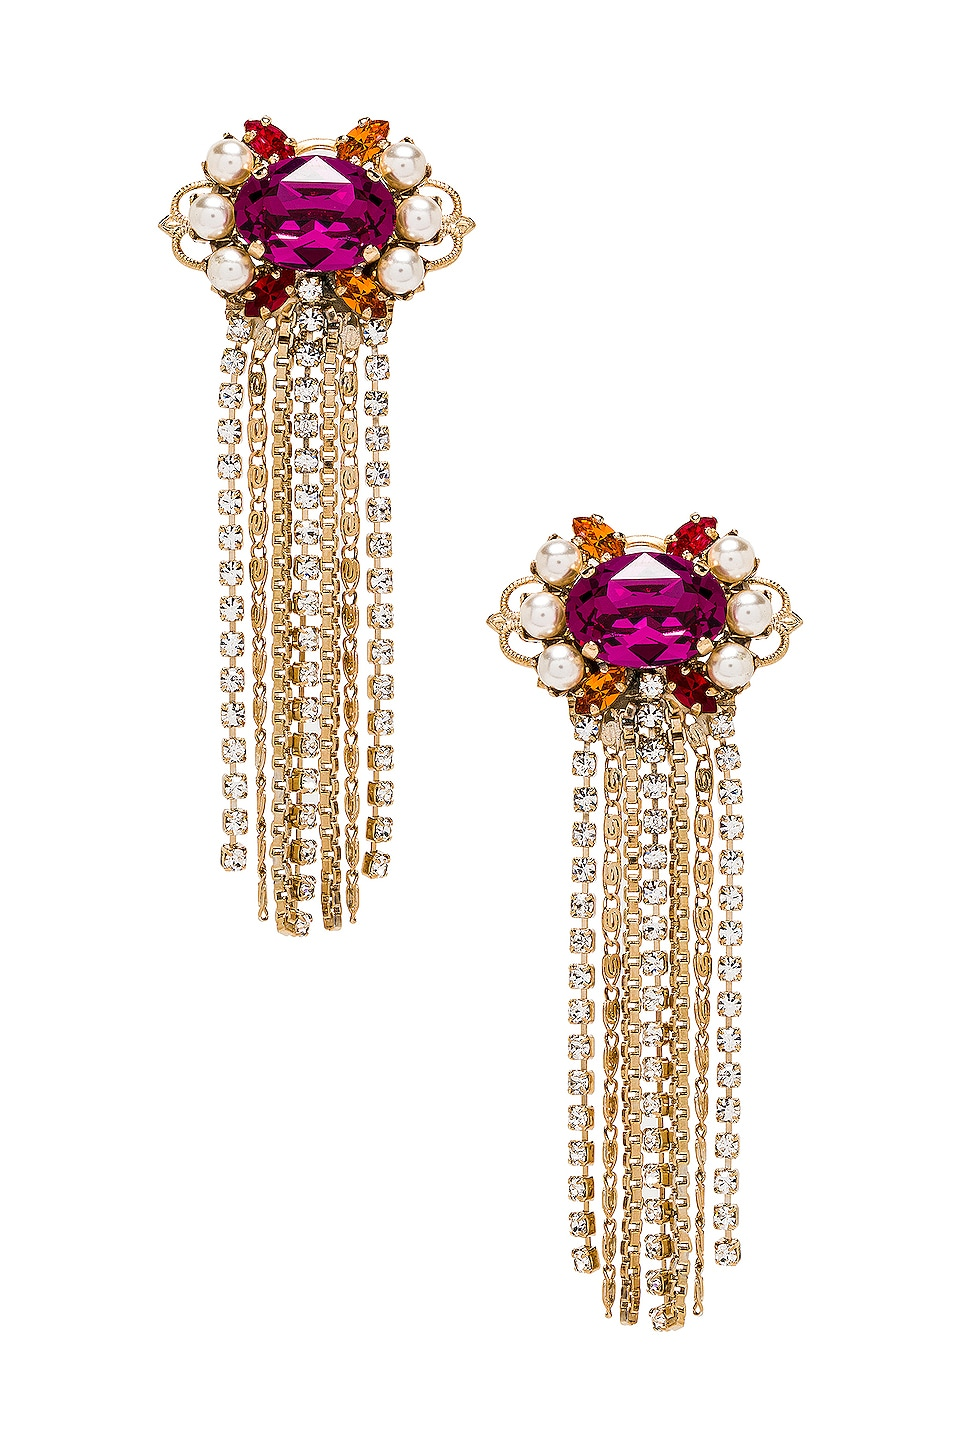 Anton Heunis Cascade Cluster Earrings in Fuchsia